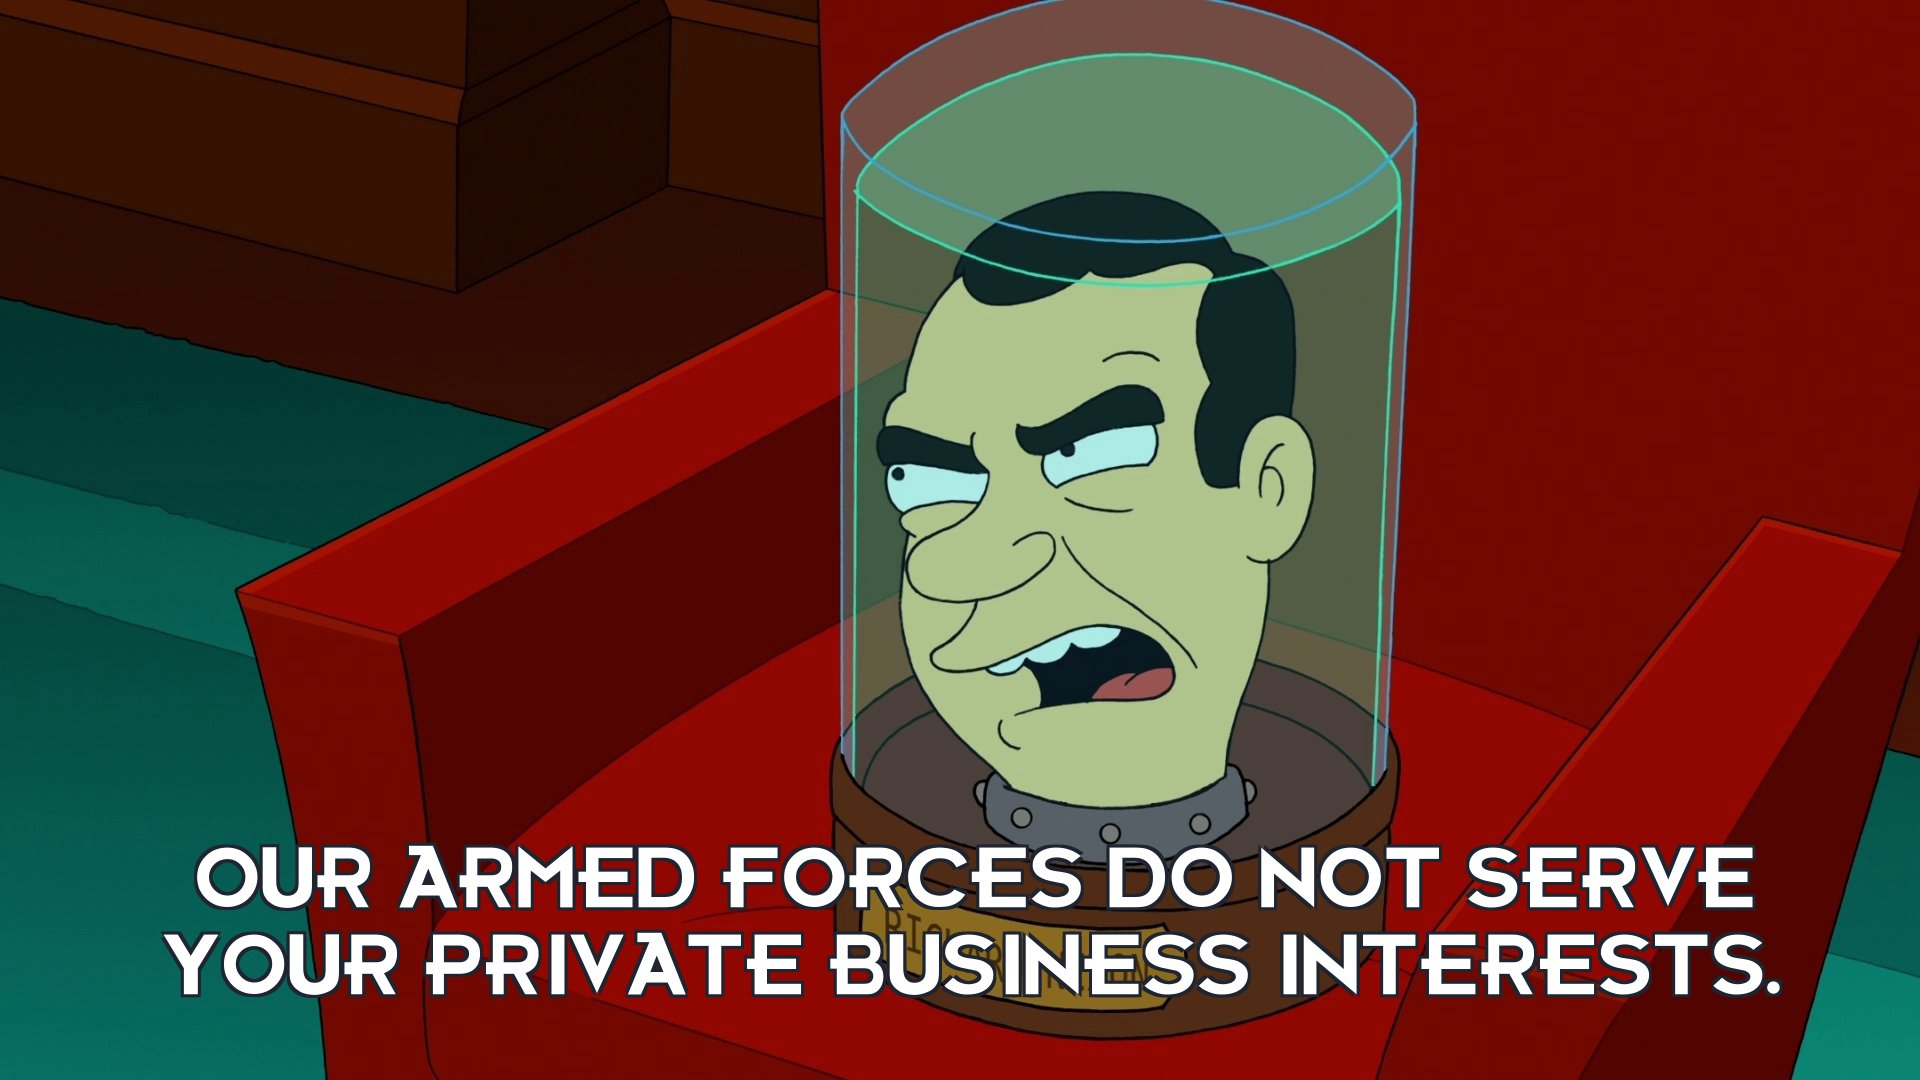 Richard M Nixon's head: Our armed forces do not serve your private business interests.